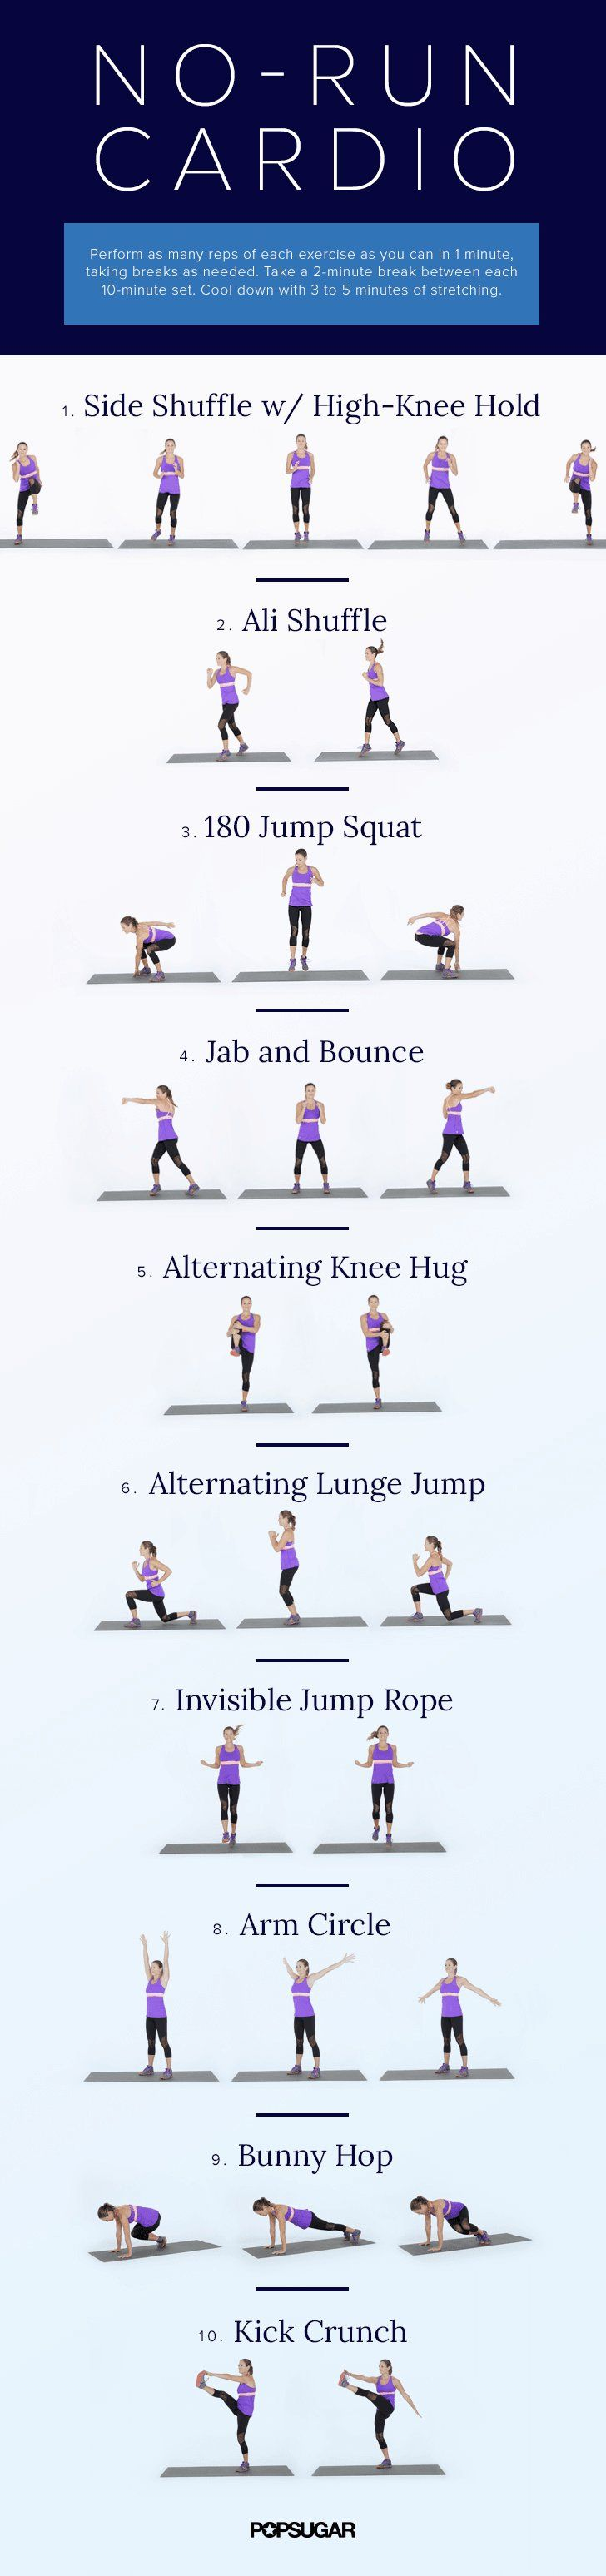 Cardio Workouts You Can Do at Home | POPSUGAR Fitness